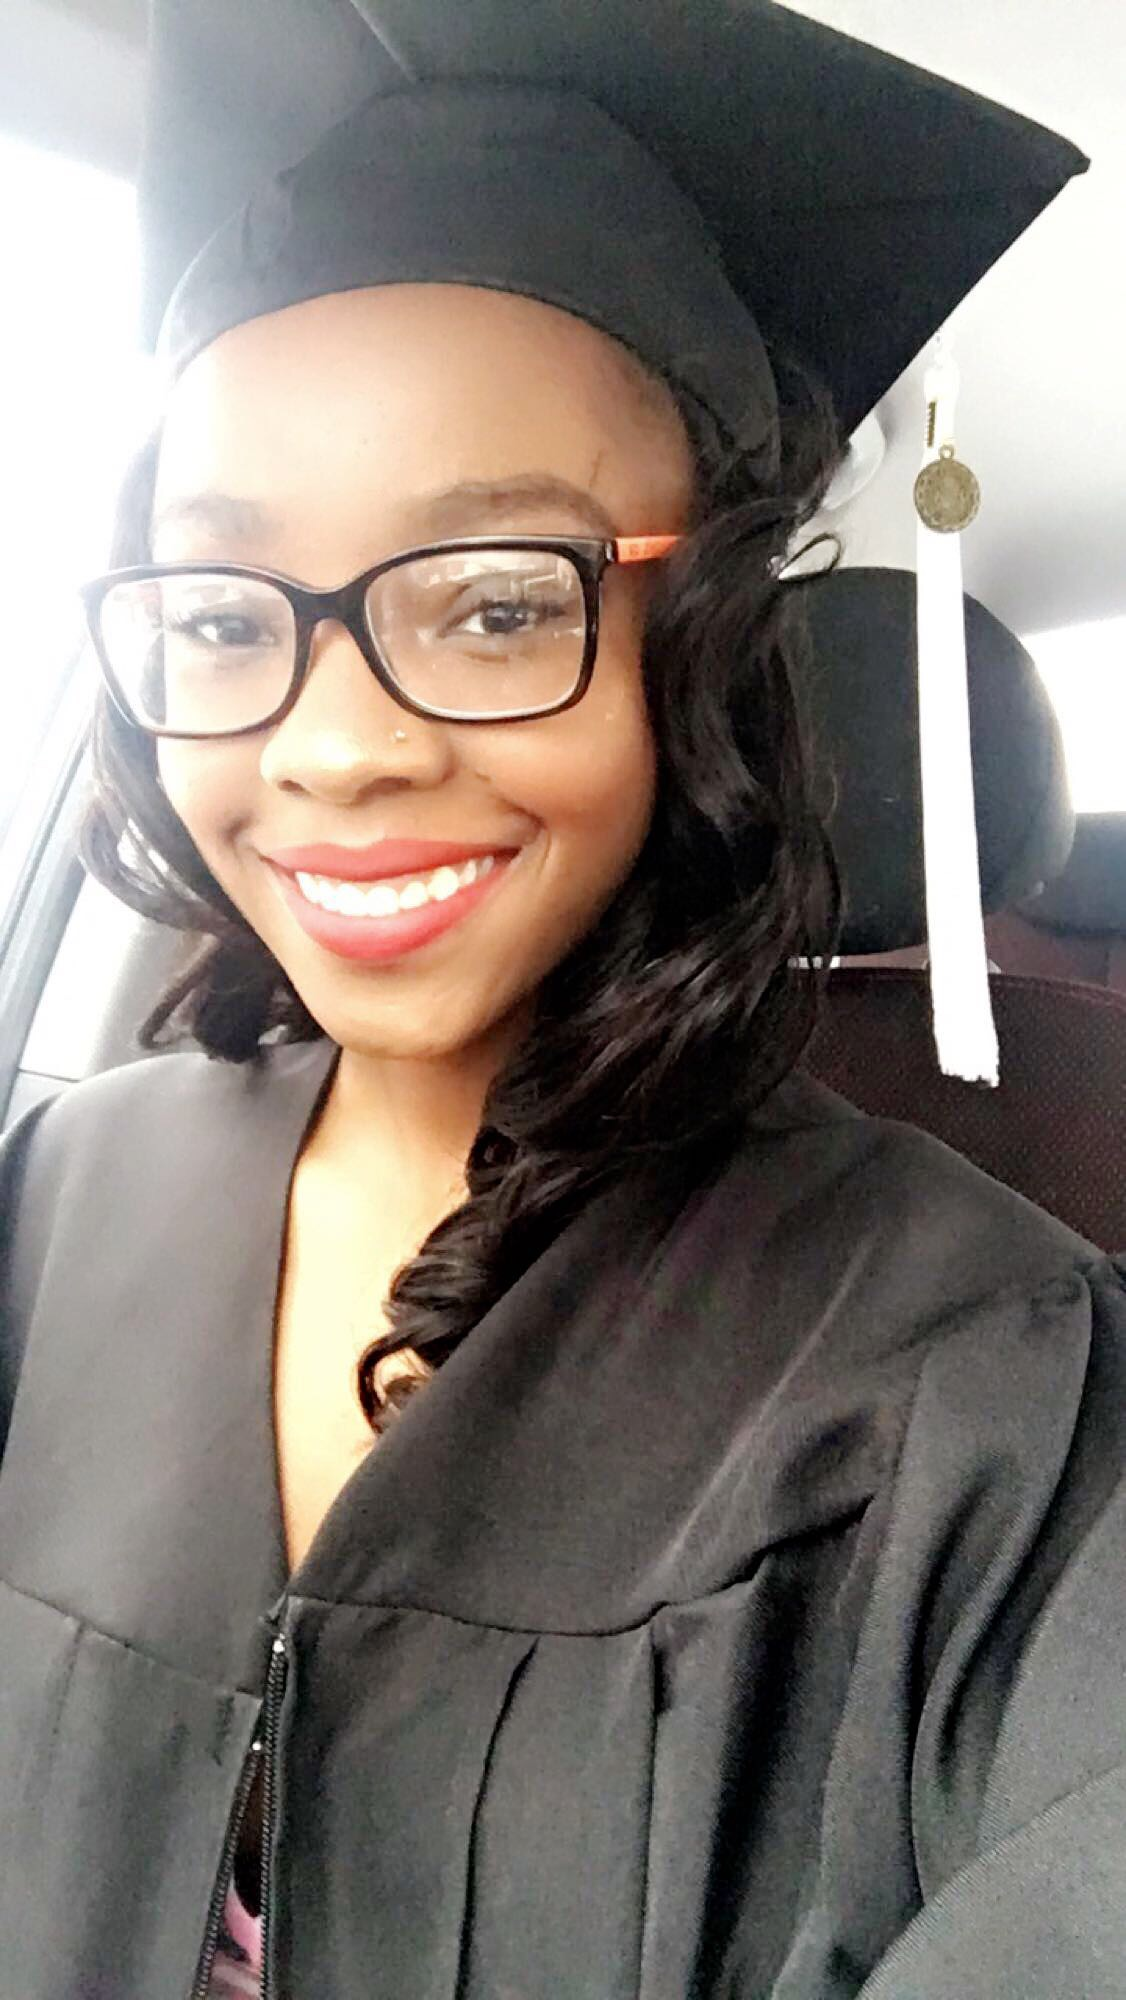 Wore it for graduation. Holds curls beautifully